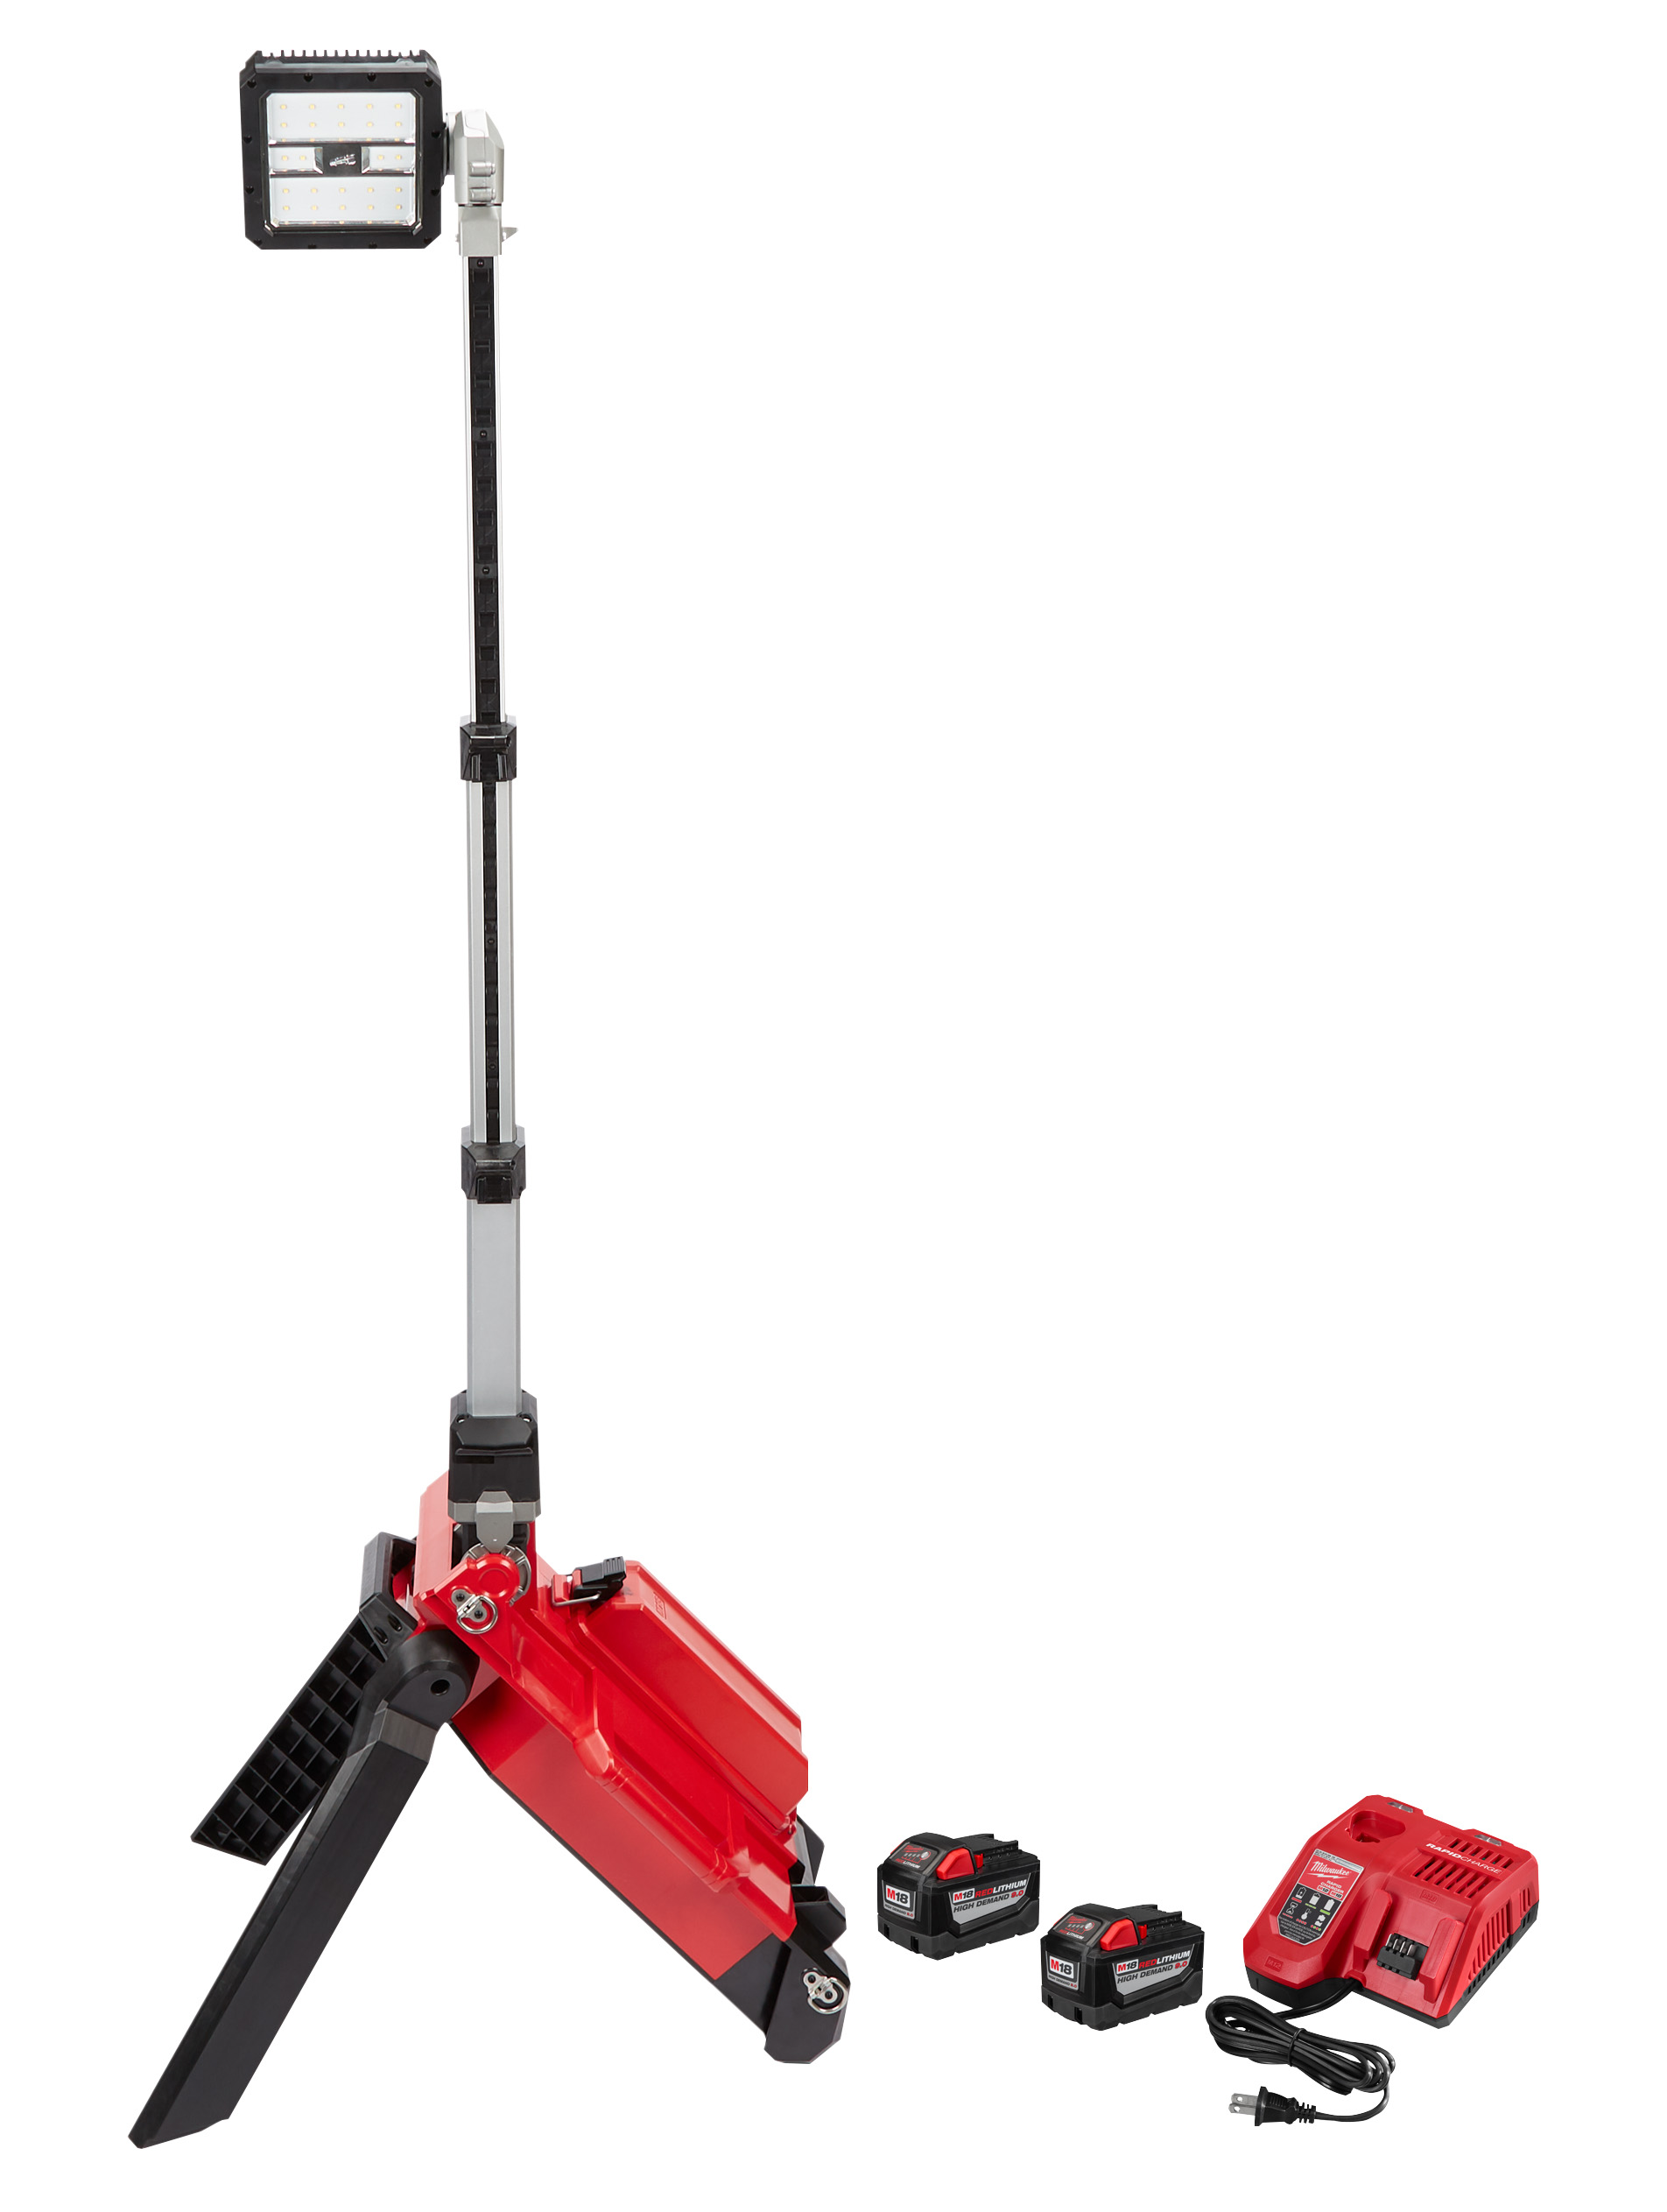 Milwaukee® M18™ ROCKET™ 2120-22HD Cordless Dual Pack Tower Light With Key, 22 in L x 7.1 in W x 10.6 in H, 18 VDC, LED Lamp